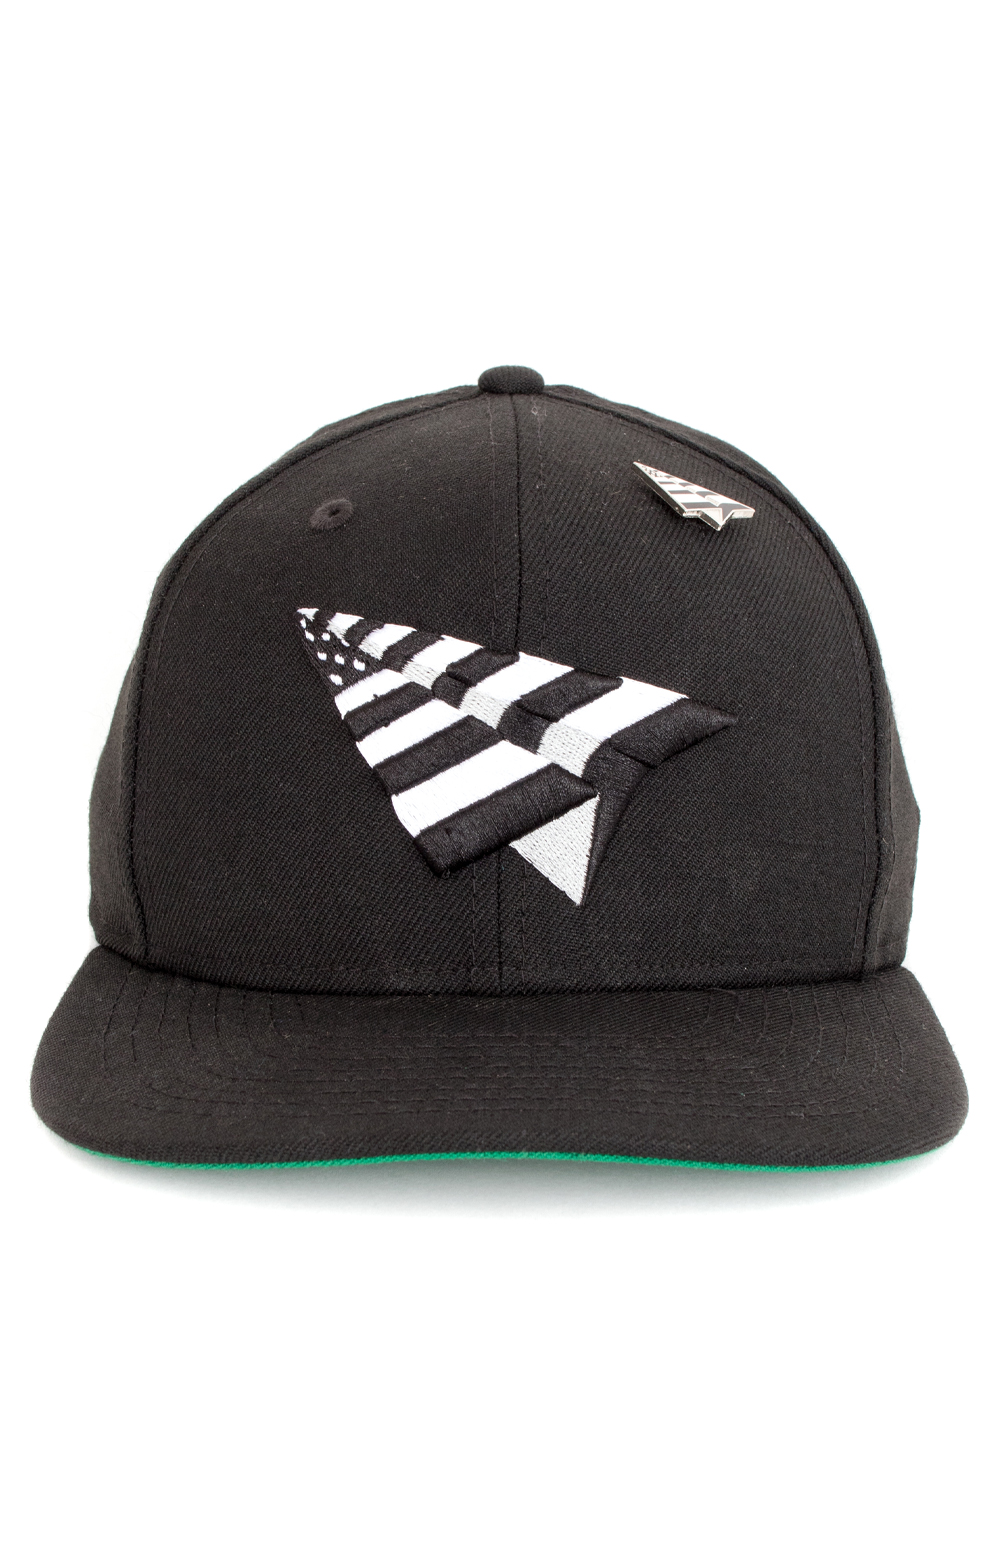 Crown NE Snap-Back Hat - Black/Green 2